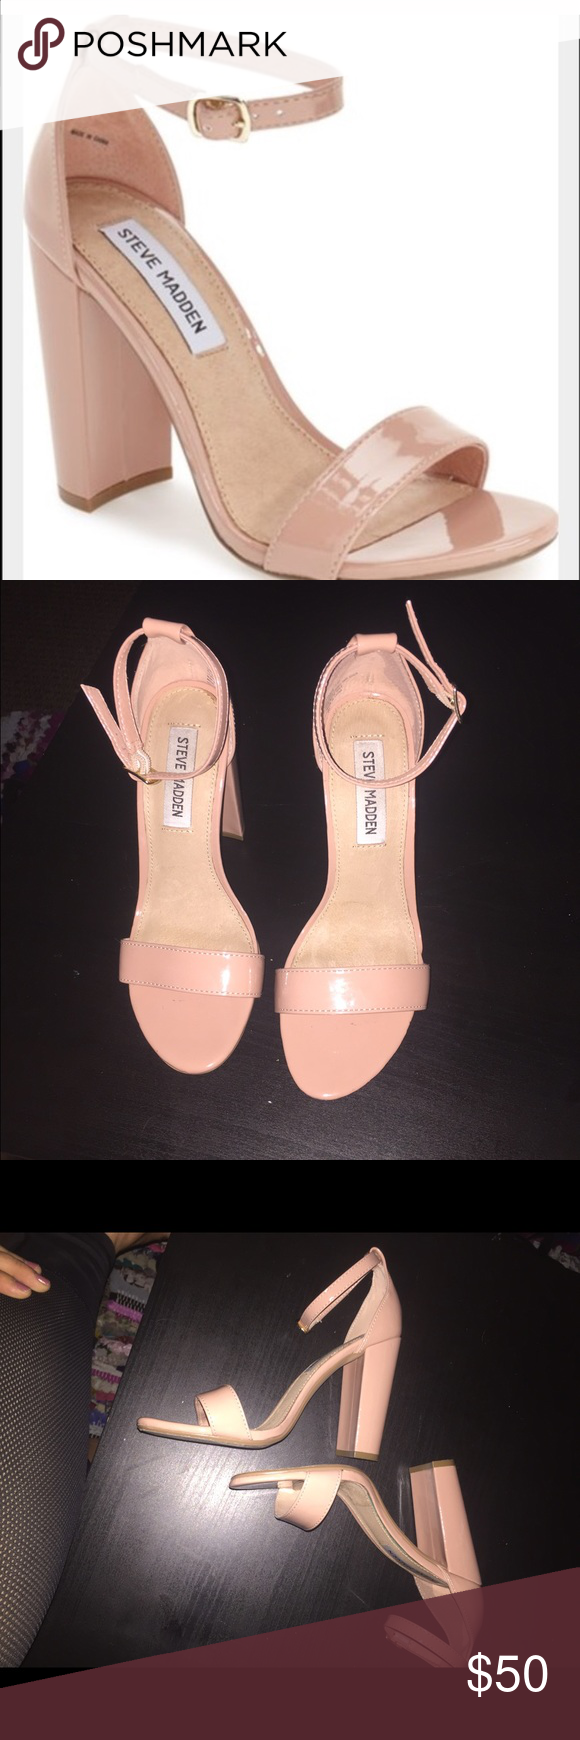 """Steve Madden """"Carrson"""" Steve Madden """"Carrson"""" size 6.5. Happy to negotiate, no trades Steve Madden Shoes Heels"""